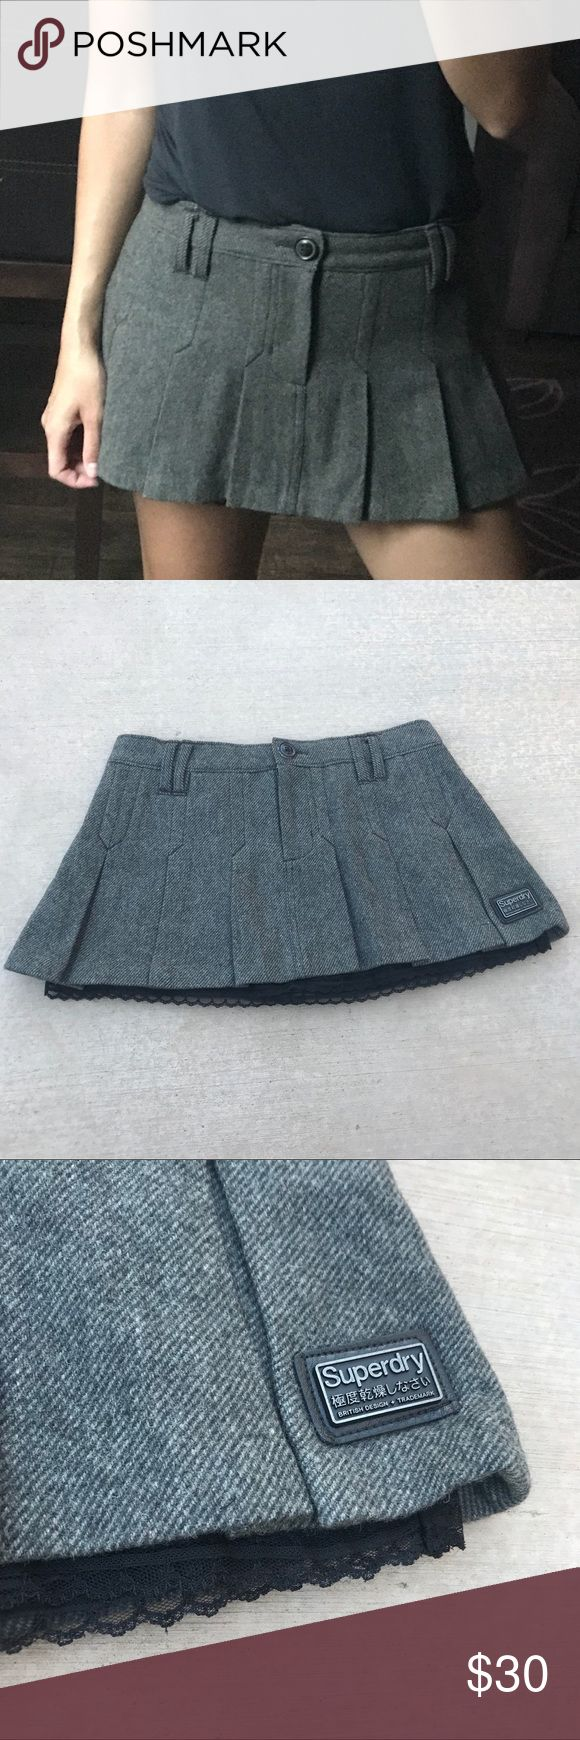 "Super Dry Pleated Mini Skirt • 71% wool / 15% polyester / 8% acrylic / 6% nylon • Pleated • Lined with lace edge satin that pokes out under outer layer • Button and hidden zipper closure • Length 11"" • Flat waist measurement 15"" Super Dry Skirts Mini"